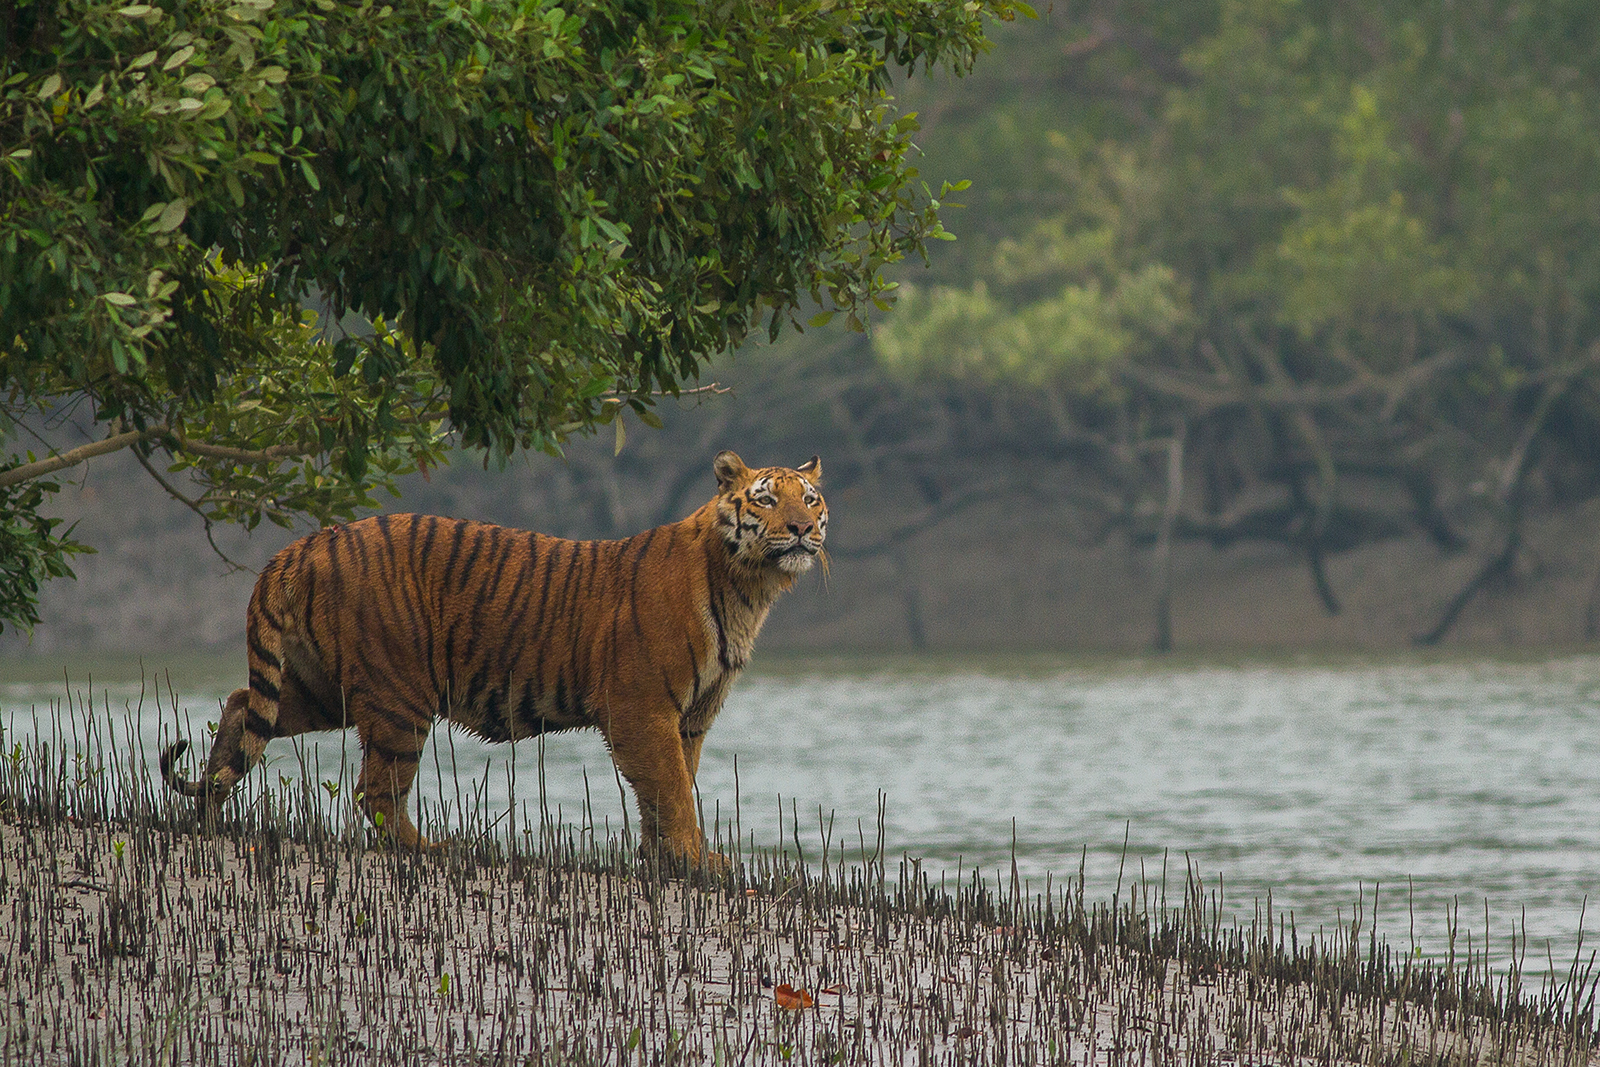 Number of Tigers in the Sundarbans Rises From 88 to 96